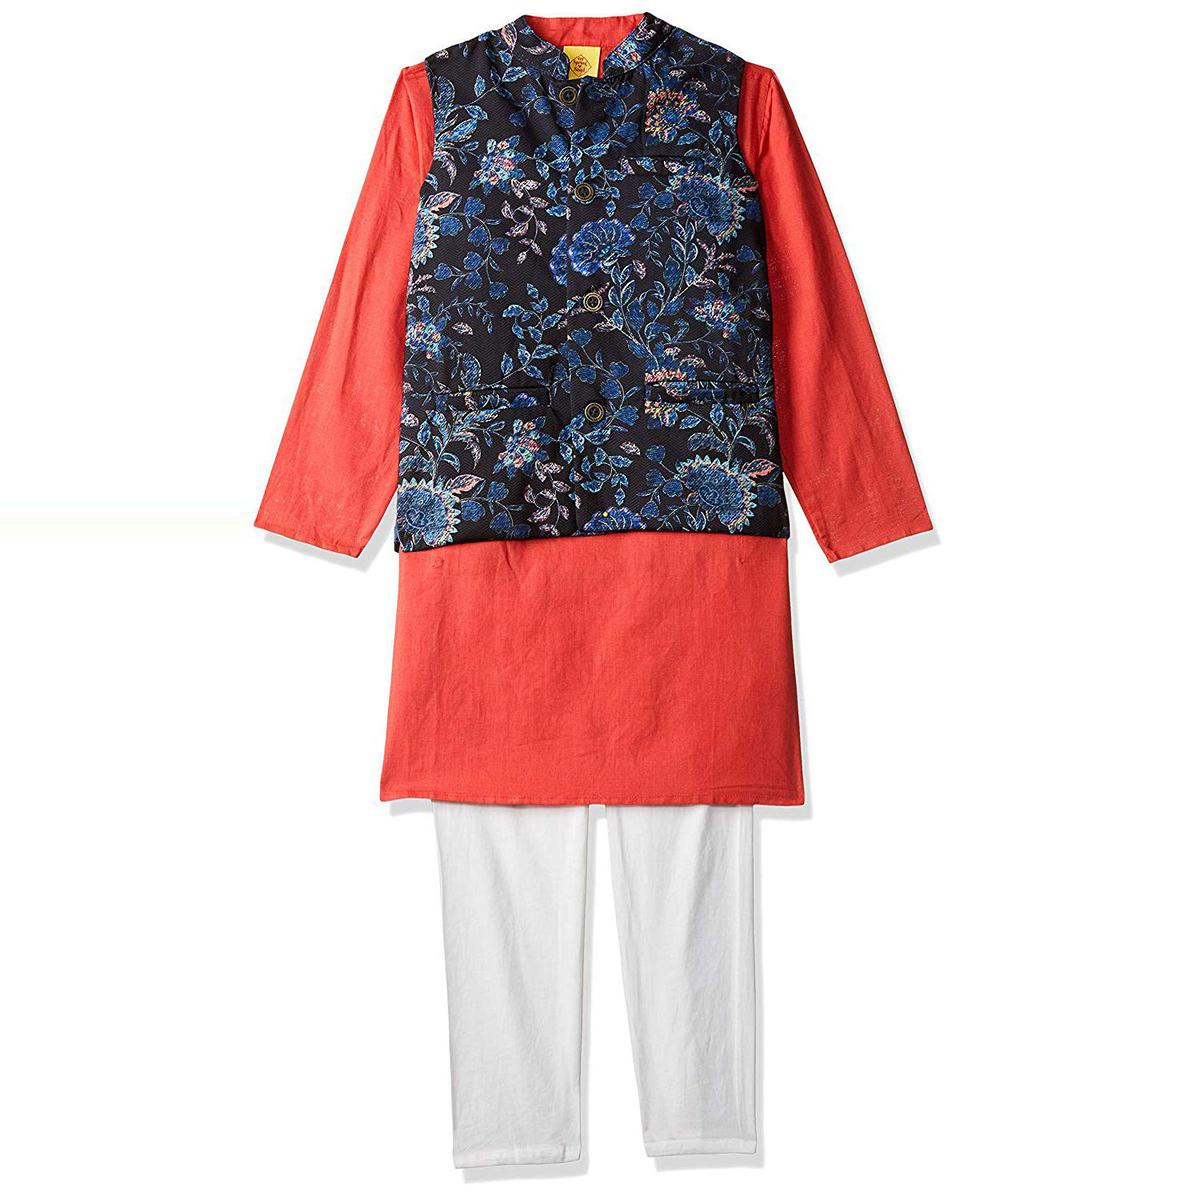 612 League - Red Colored Solid Floral Kurta Pyjama With Waistcoat Set For Boys